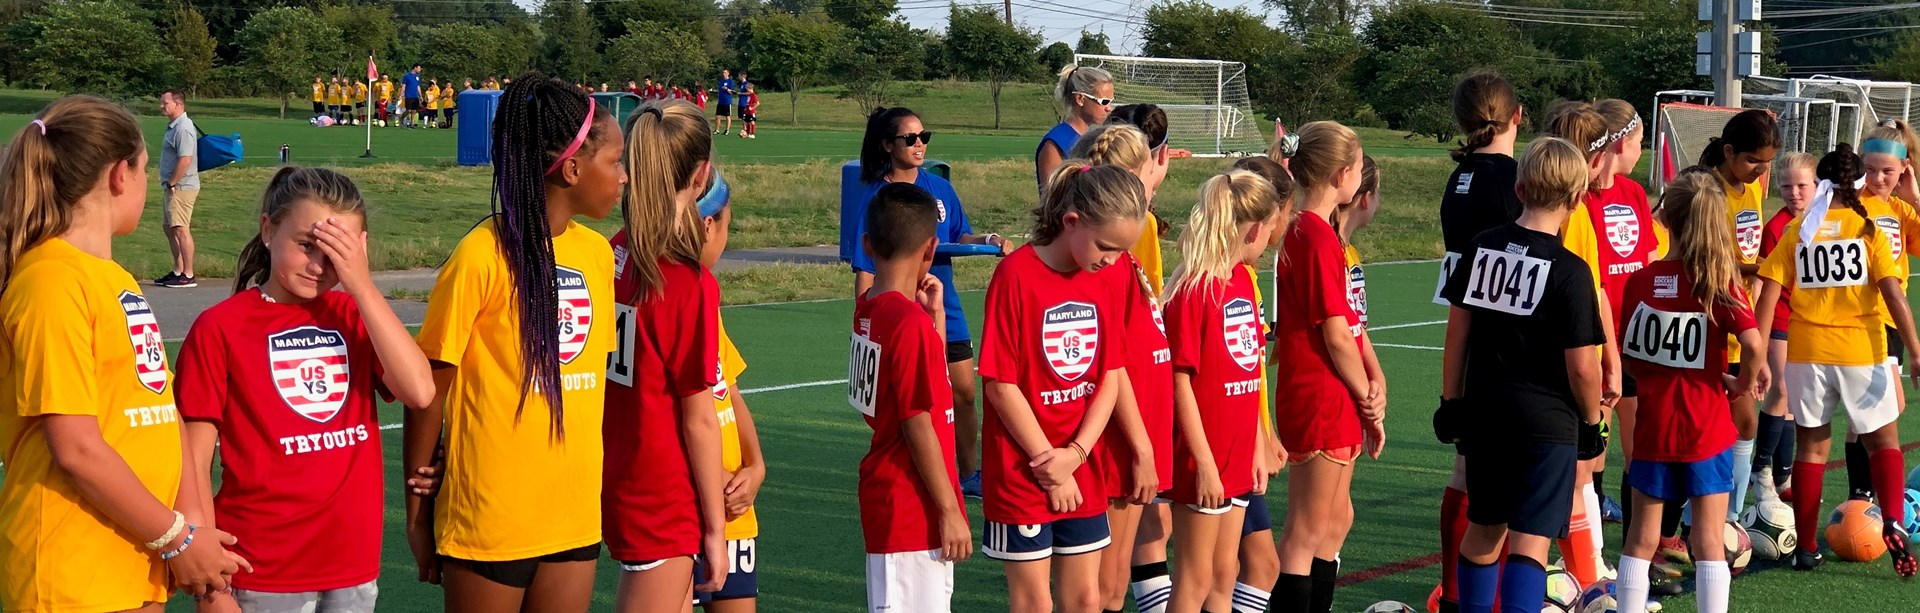 odp_tryouts_